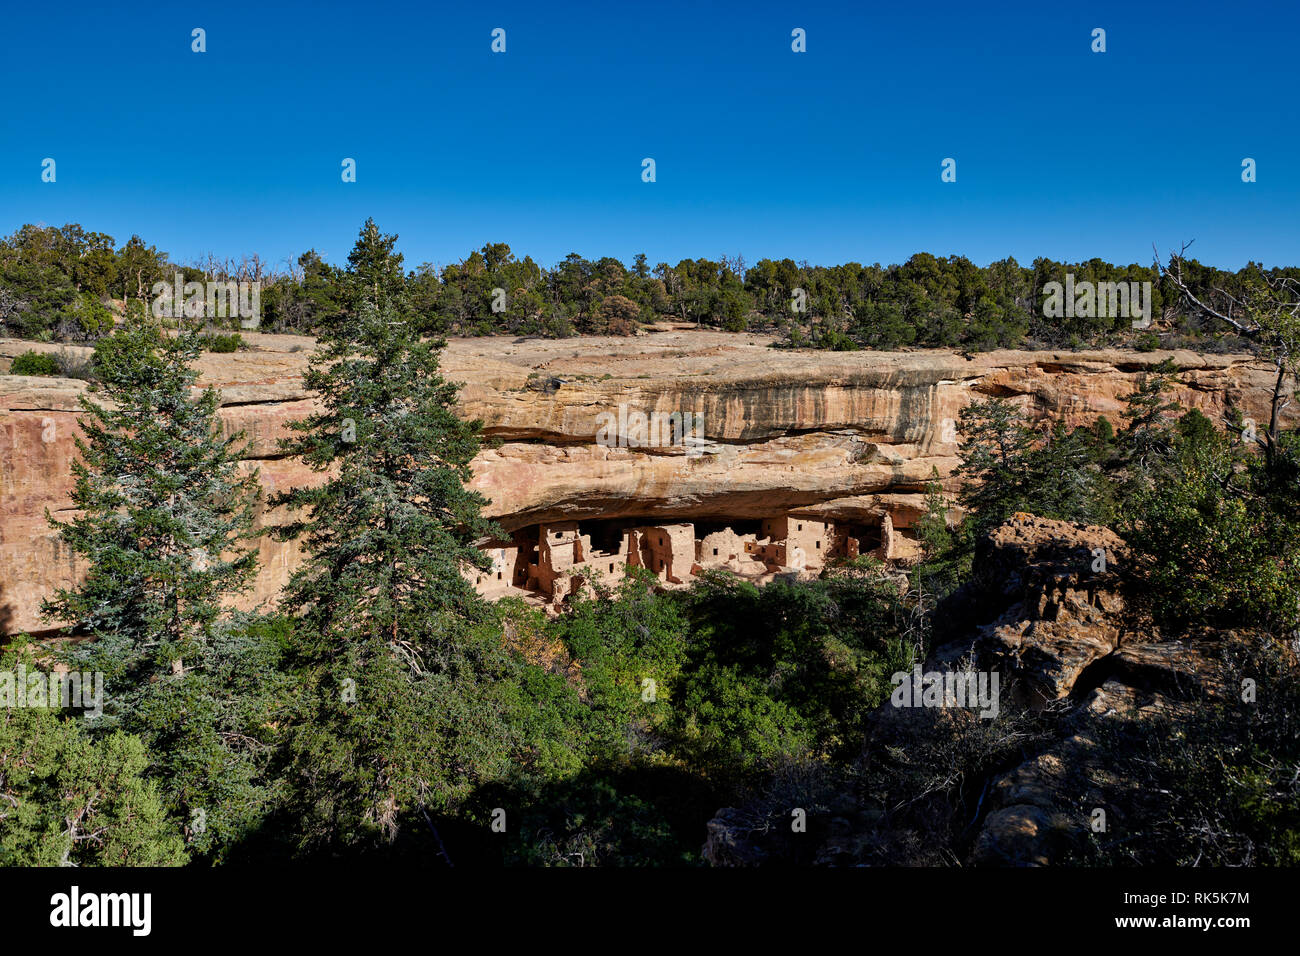 Spruce Tree House, Cliff dwellings in Mesa-Verde-National Park, UNESCO world heritage site, Colorado, USA, North America - Stock Image